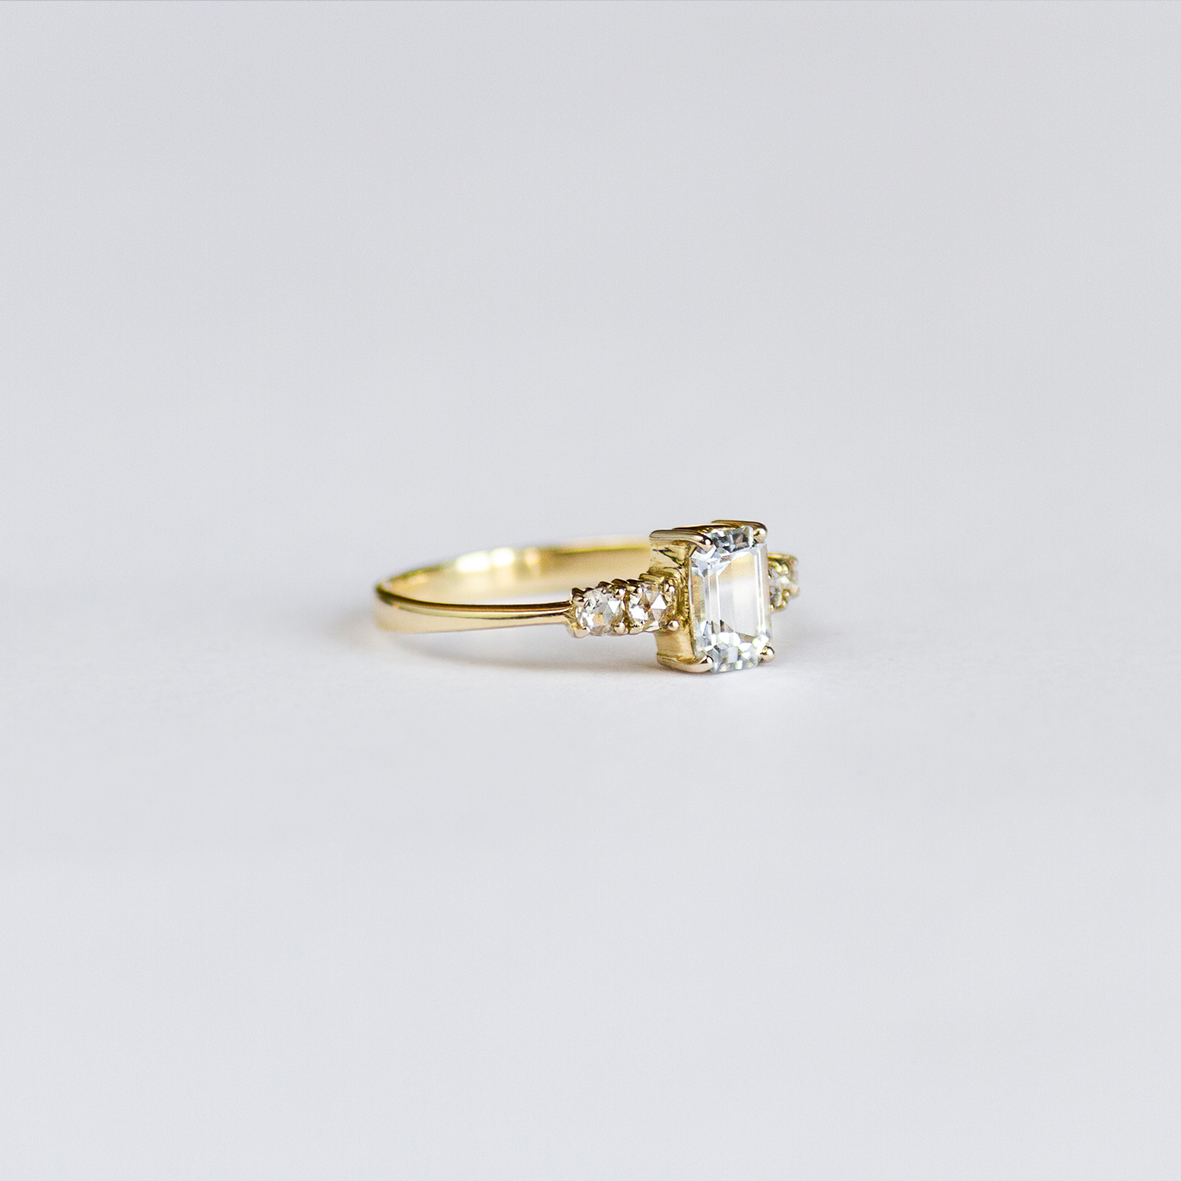 2. OONA_engagement_ficha2_single sapphire with diamonds ring